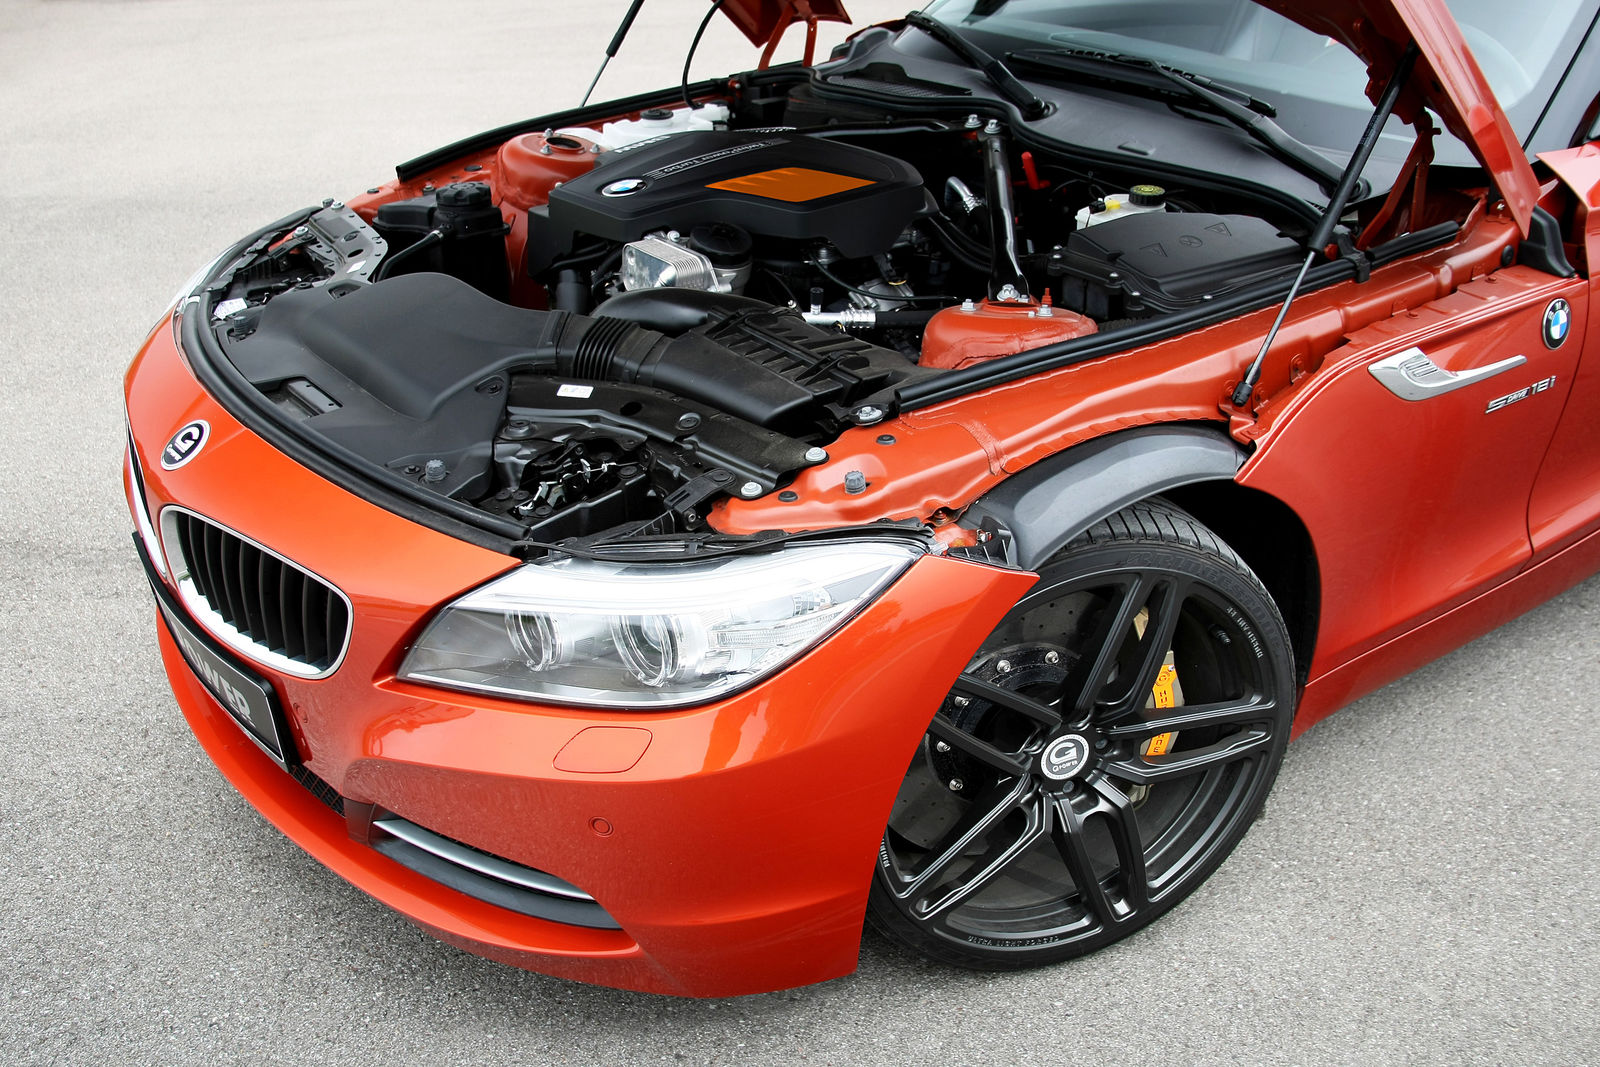 BMW_Z4_sDrive18i_by_G-Power_04